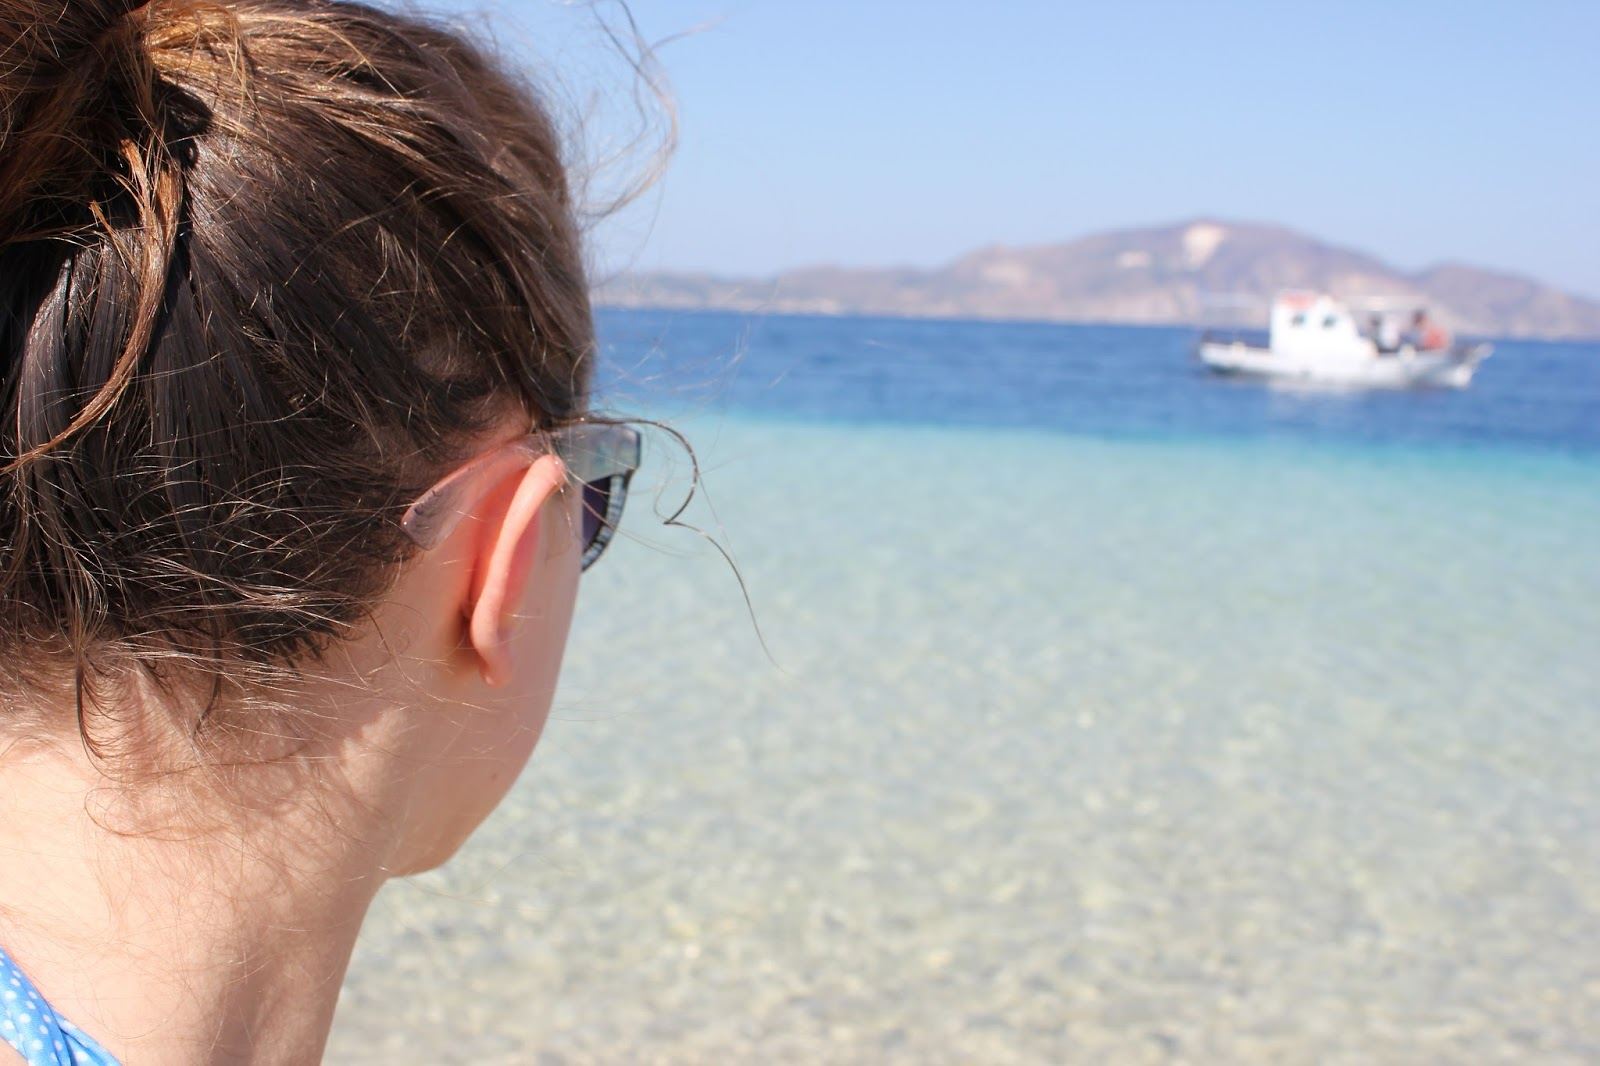 Georgie Minter-Brown blogger actress travel zante tsilivi holiday photo diary sea beach relax boat marathonissi turtle island